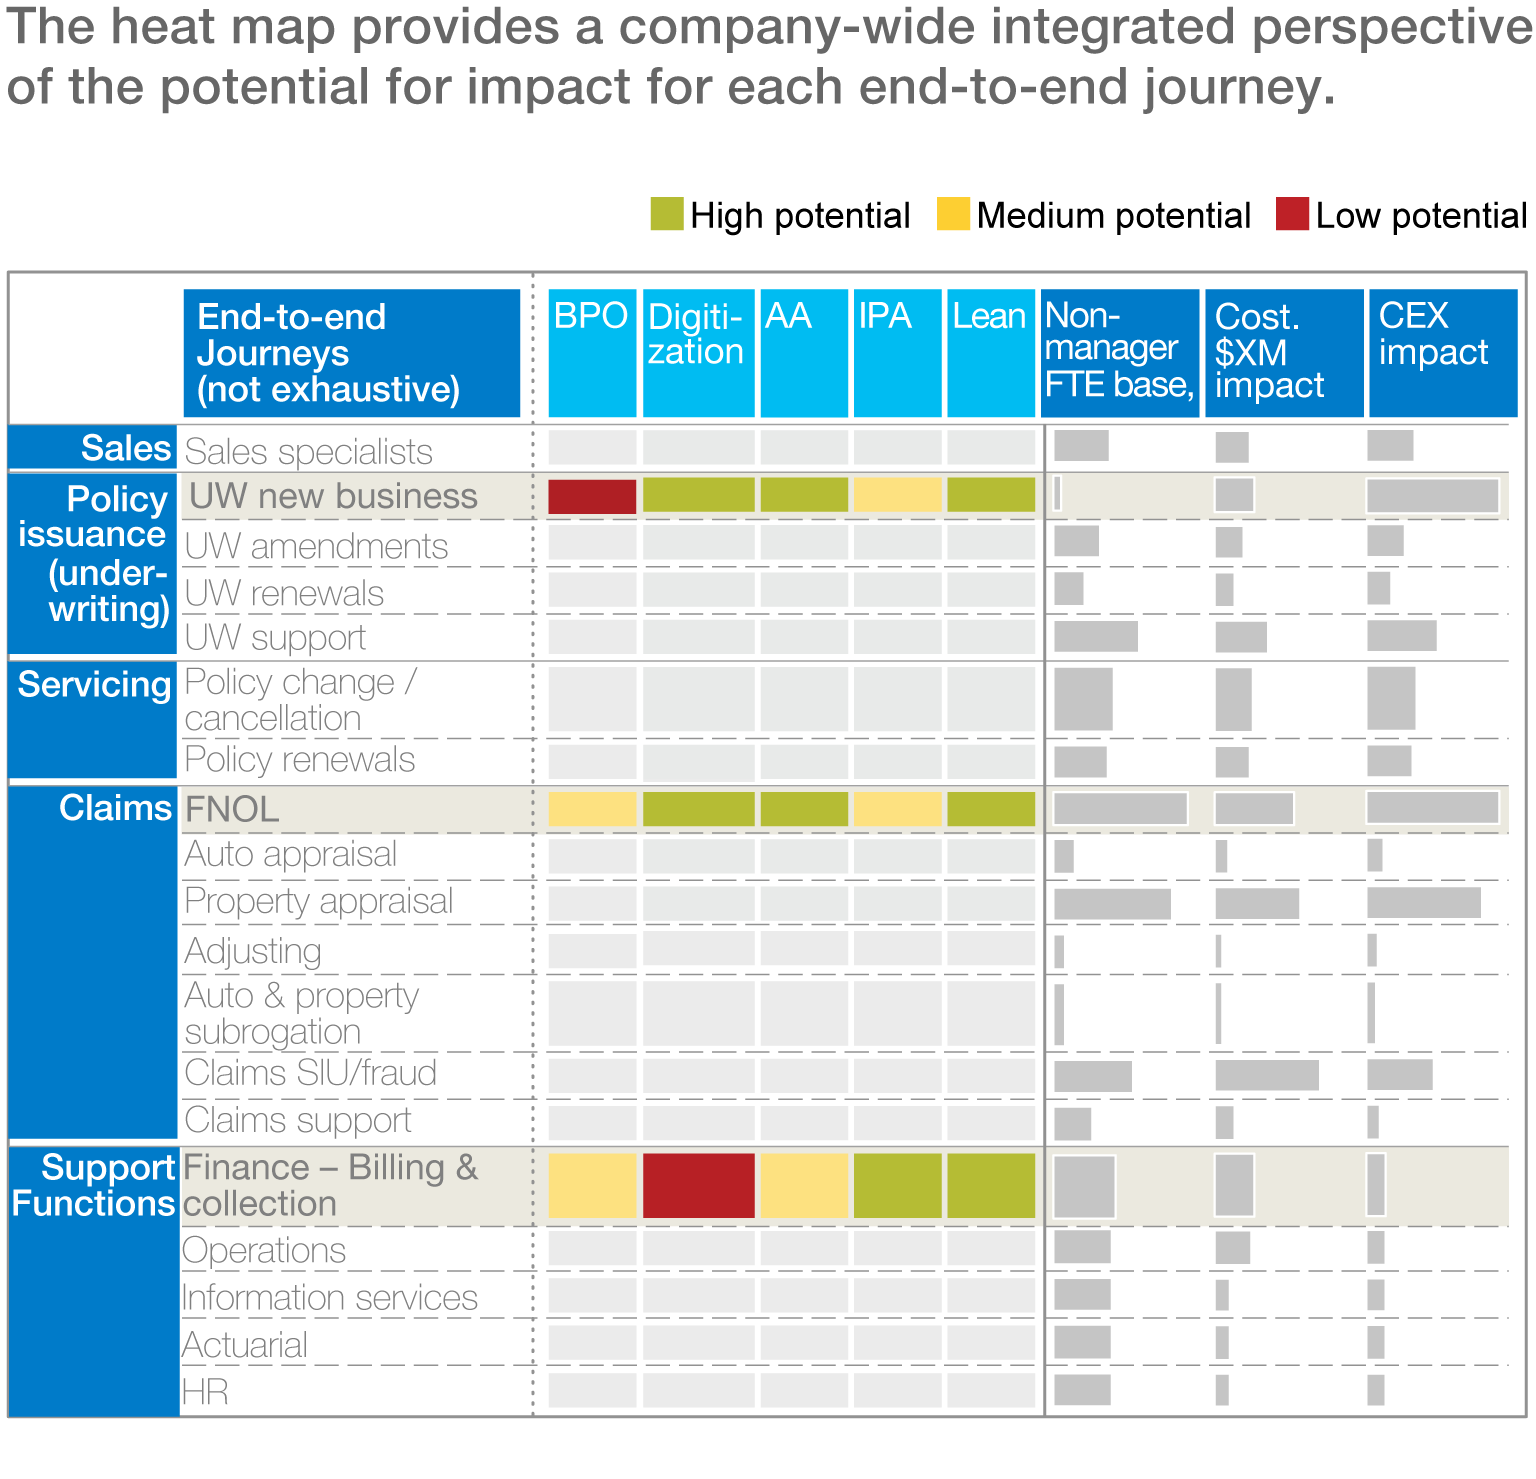 The heat map provides a company-wide integrated perspective of the potential for impact for each end-to-end journey.